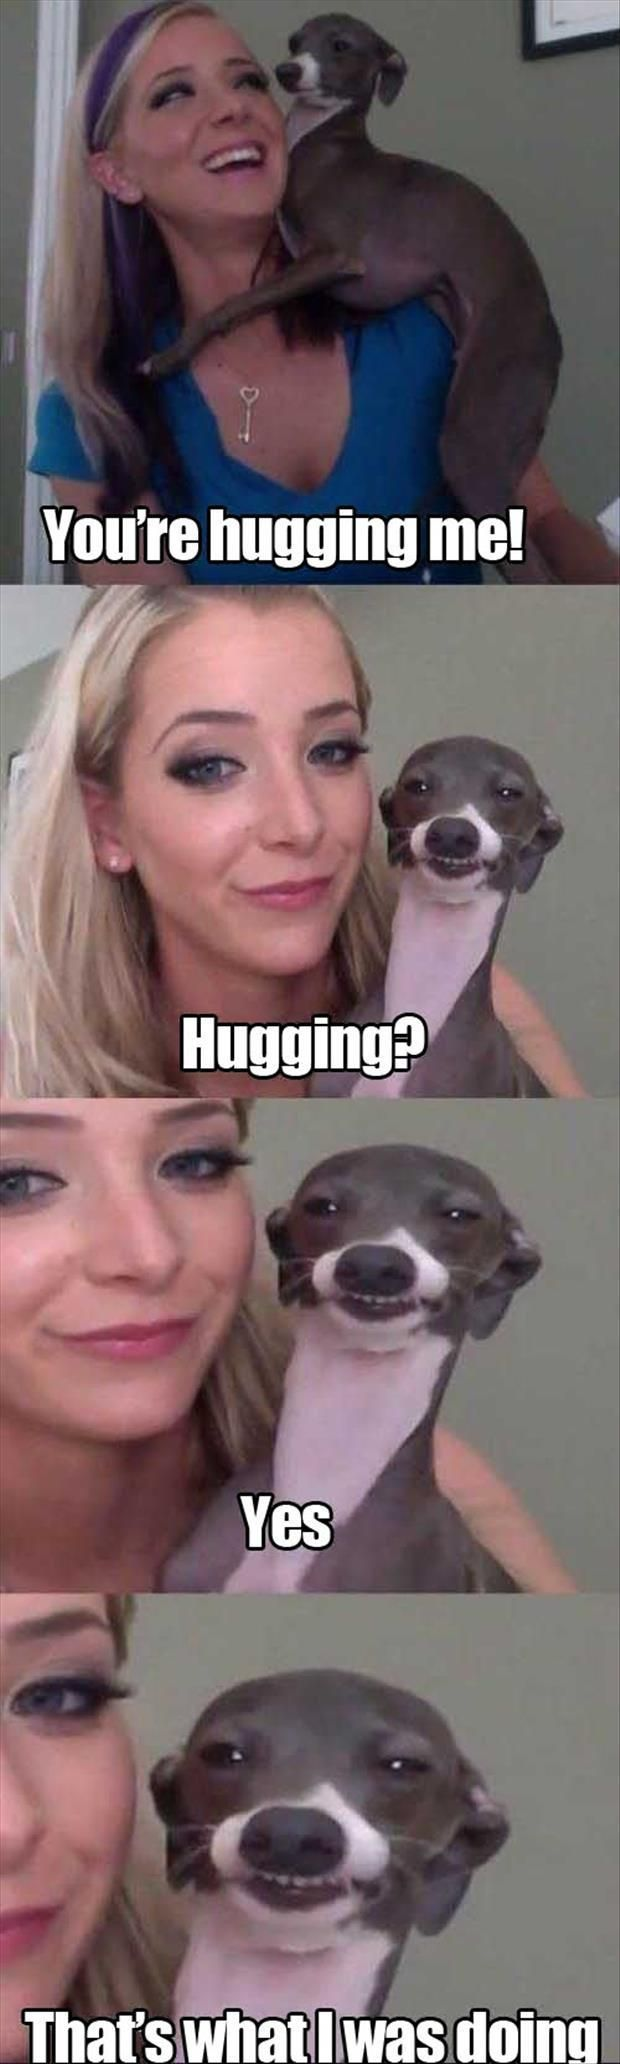 lol Be sure to check out Jenna Marbles on YouTube, she's pretty funny! Just click the image to get there.